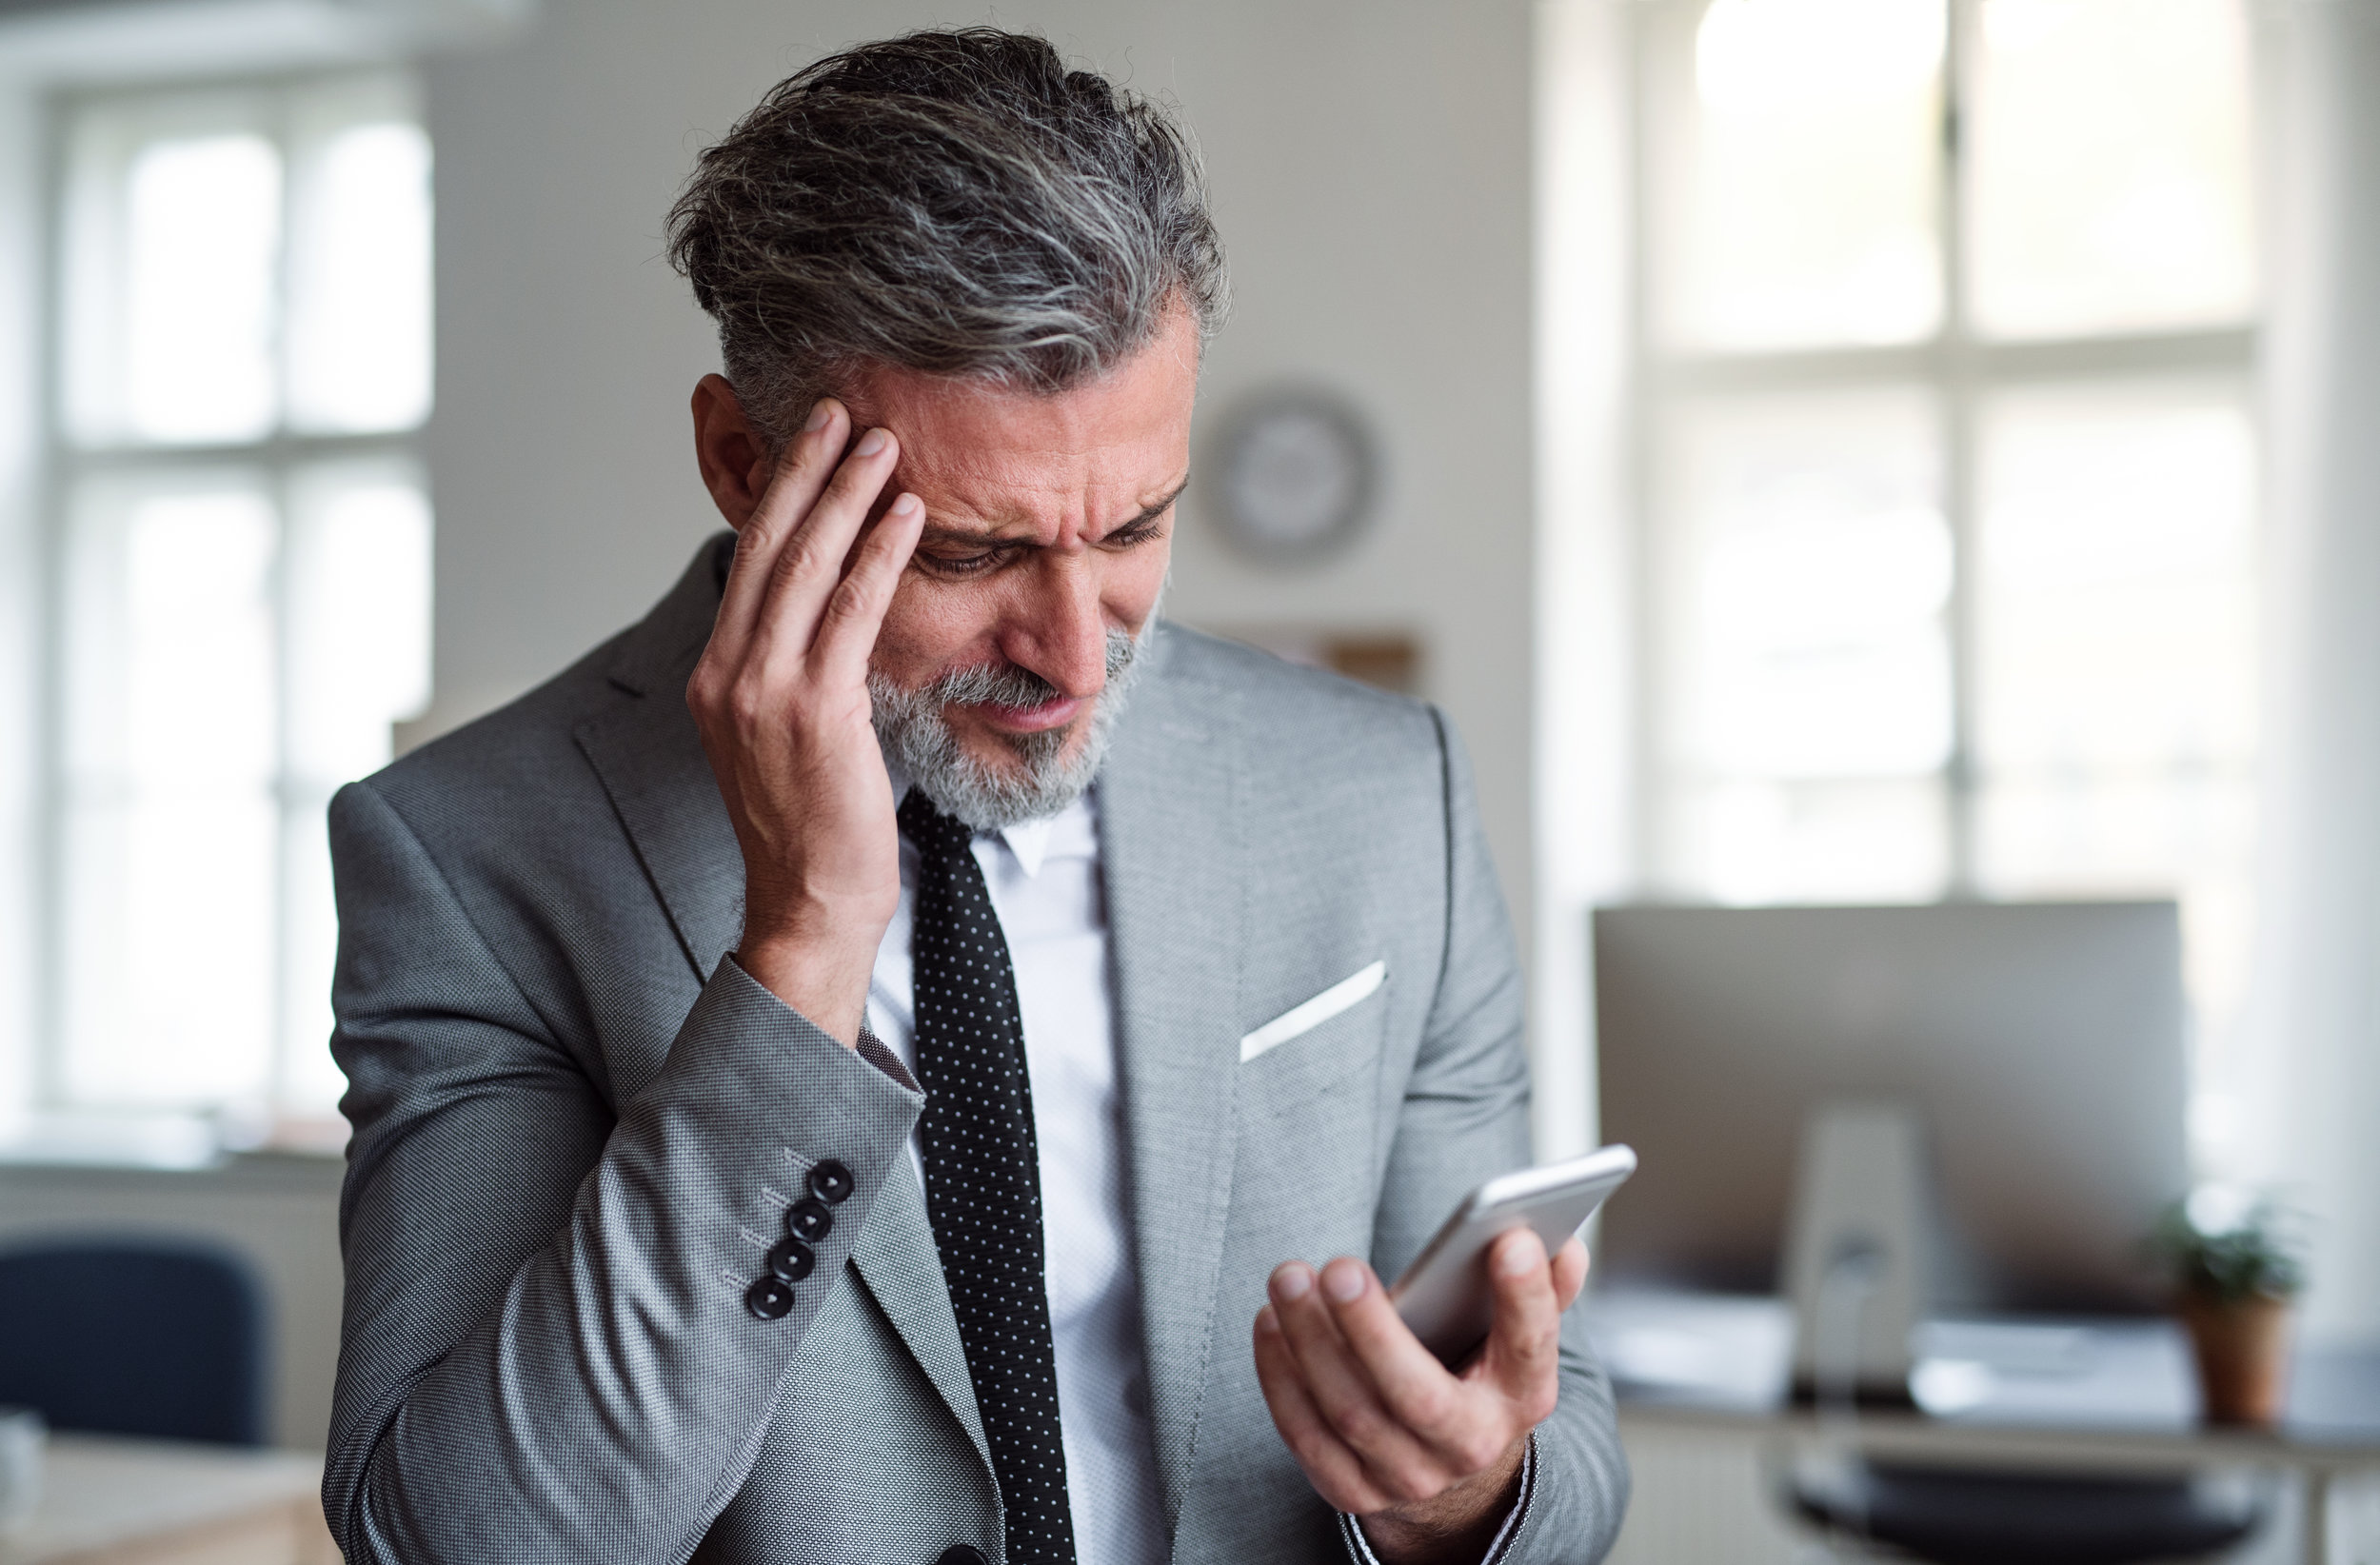 A frustrated businessman with smartphone standing in an office, reading bad news.